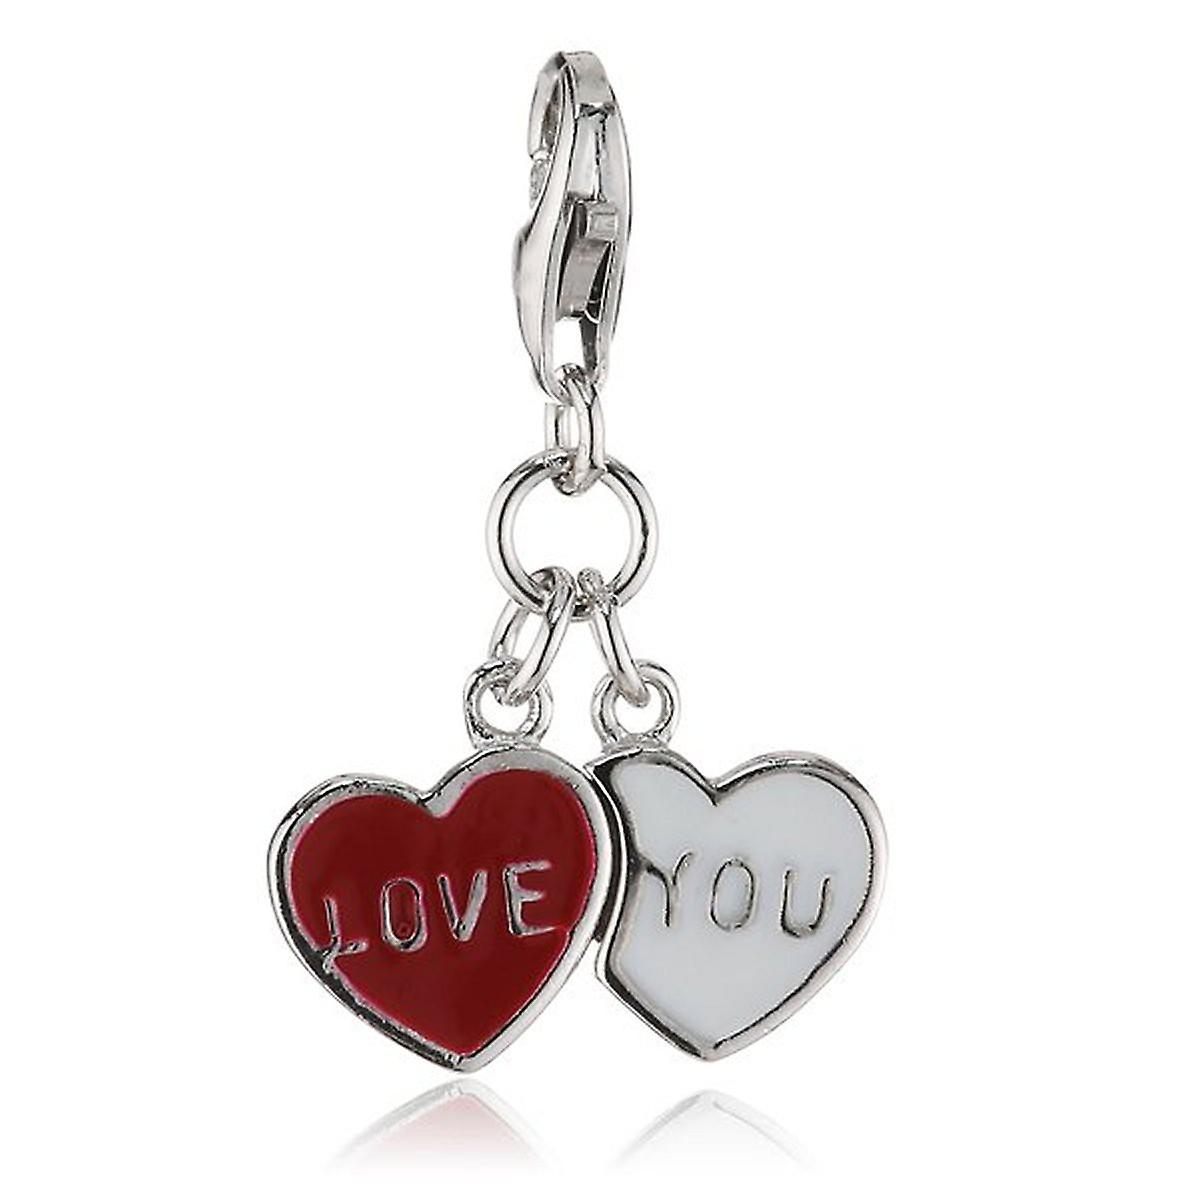 s.Oliver Jewel Damen Anhänger Charm Silber Love You SOCHA/167 - 396172